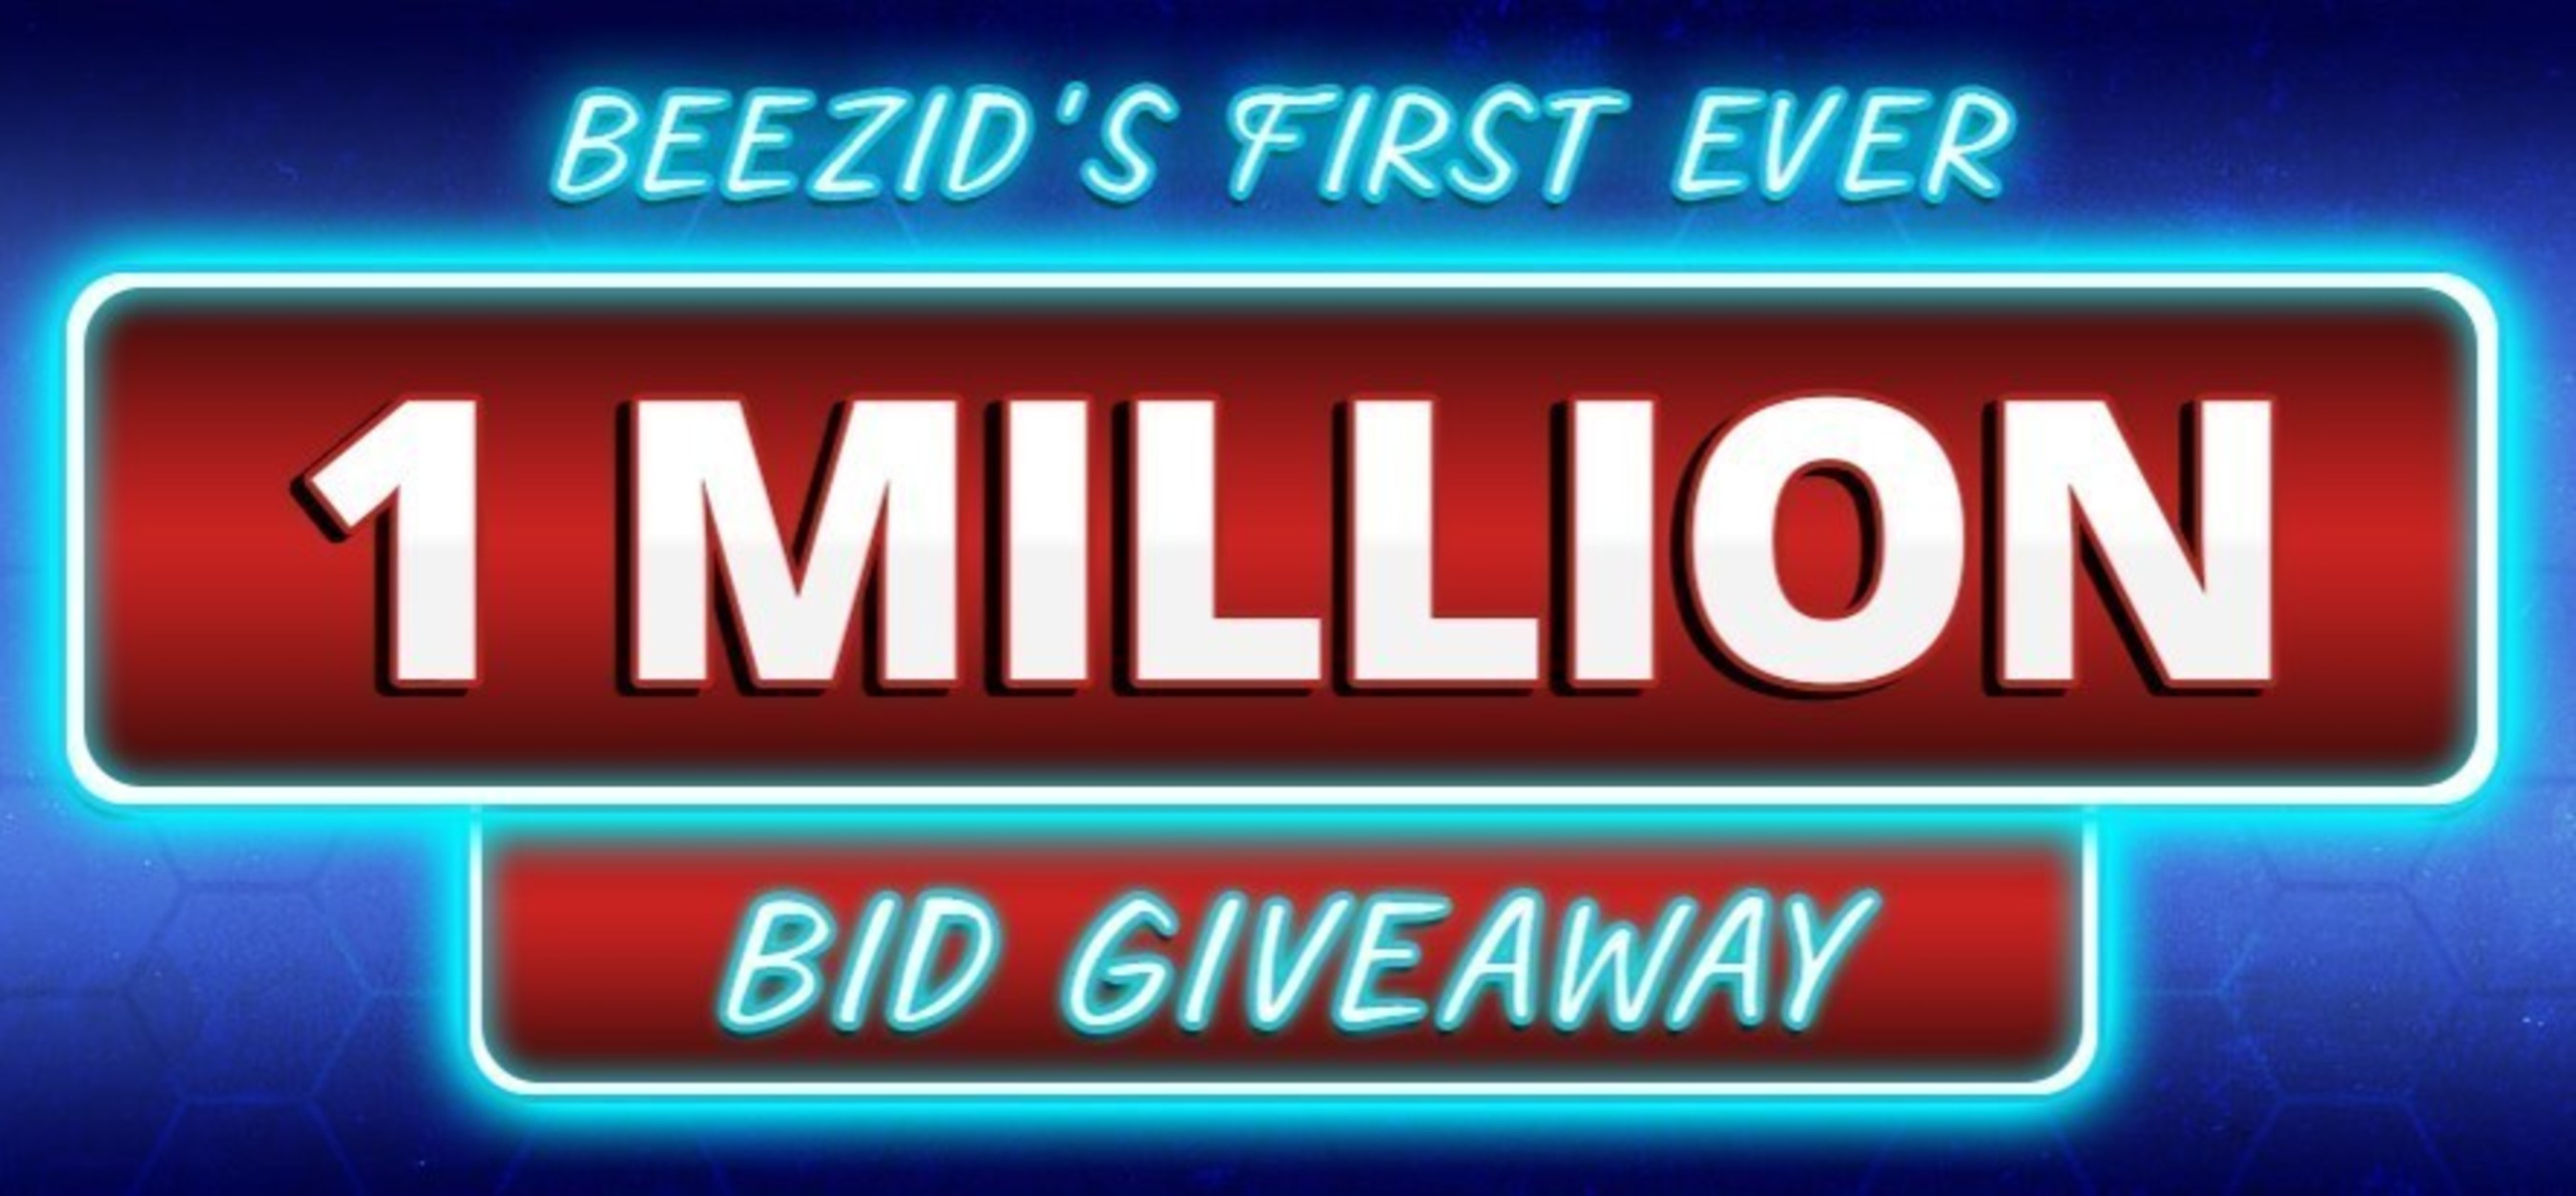 Beezid Launches 99 CENT Jeep Auction Coupled With Its First Ever 1 Million Bid Giveaway